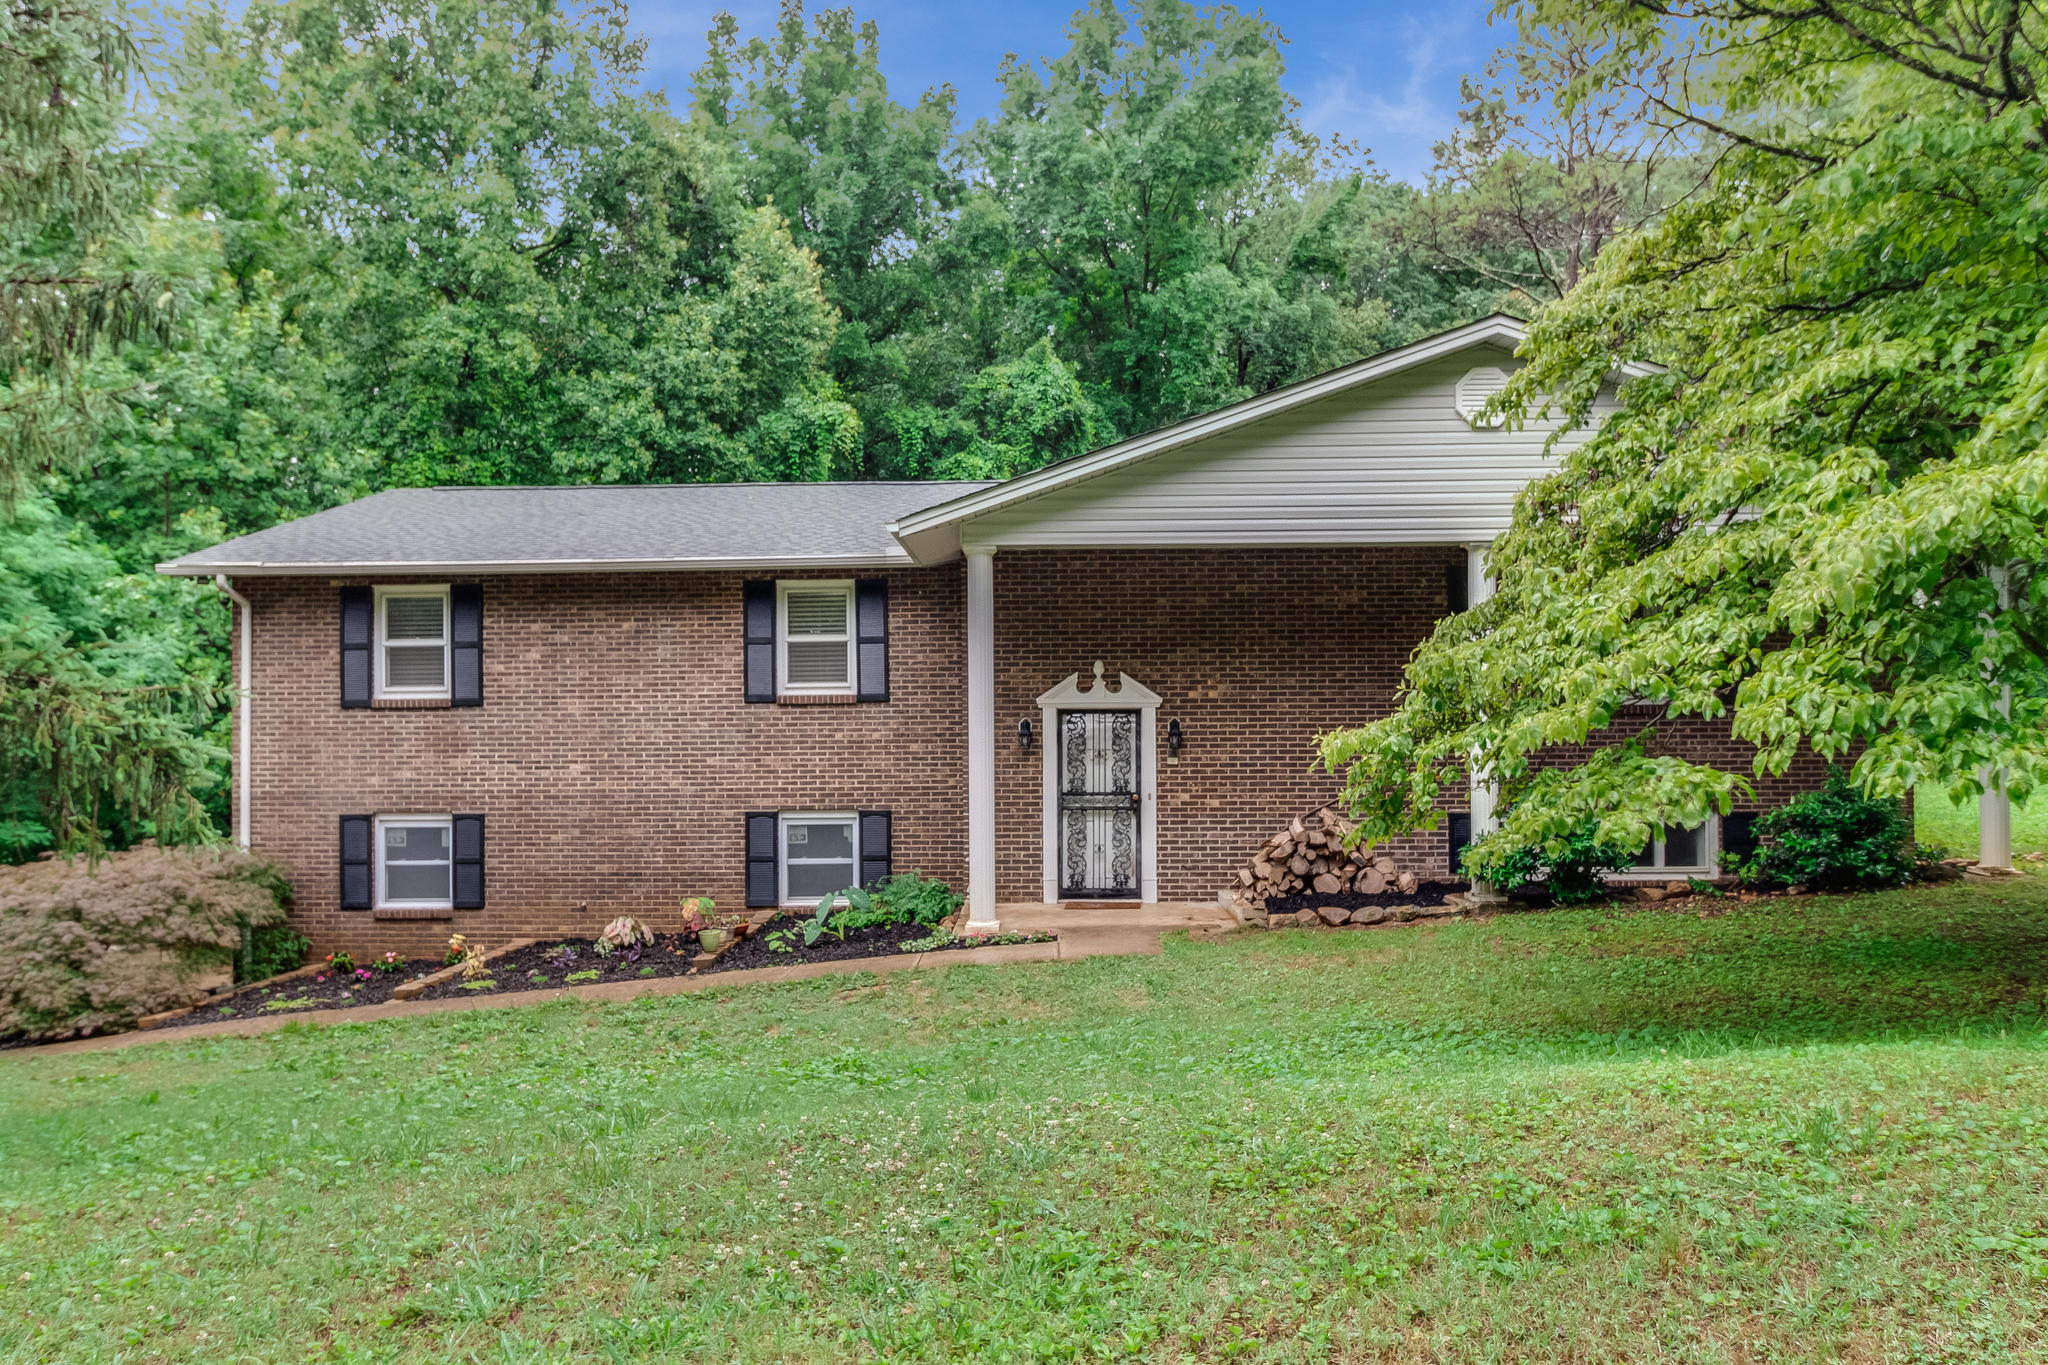 20190613181543546193000000-o Clinton anderson county homes for sale